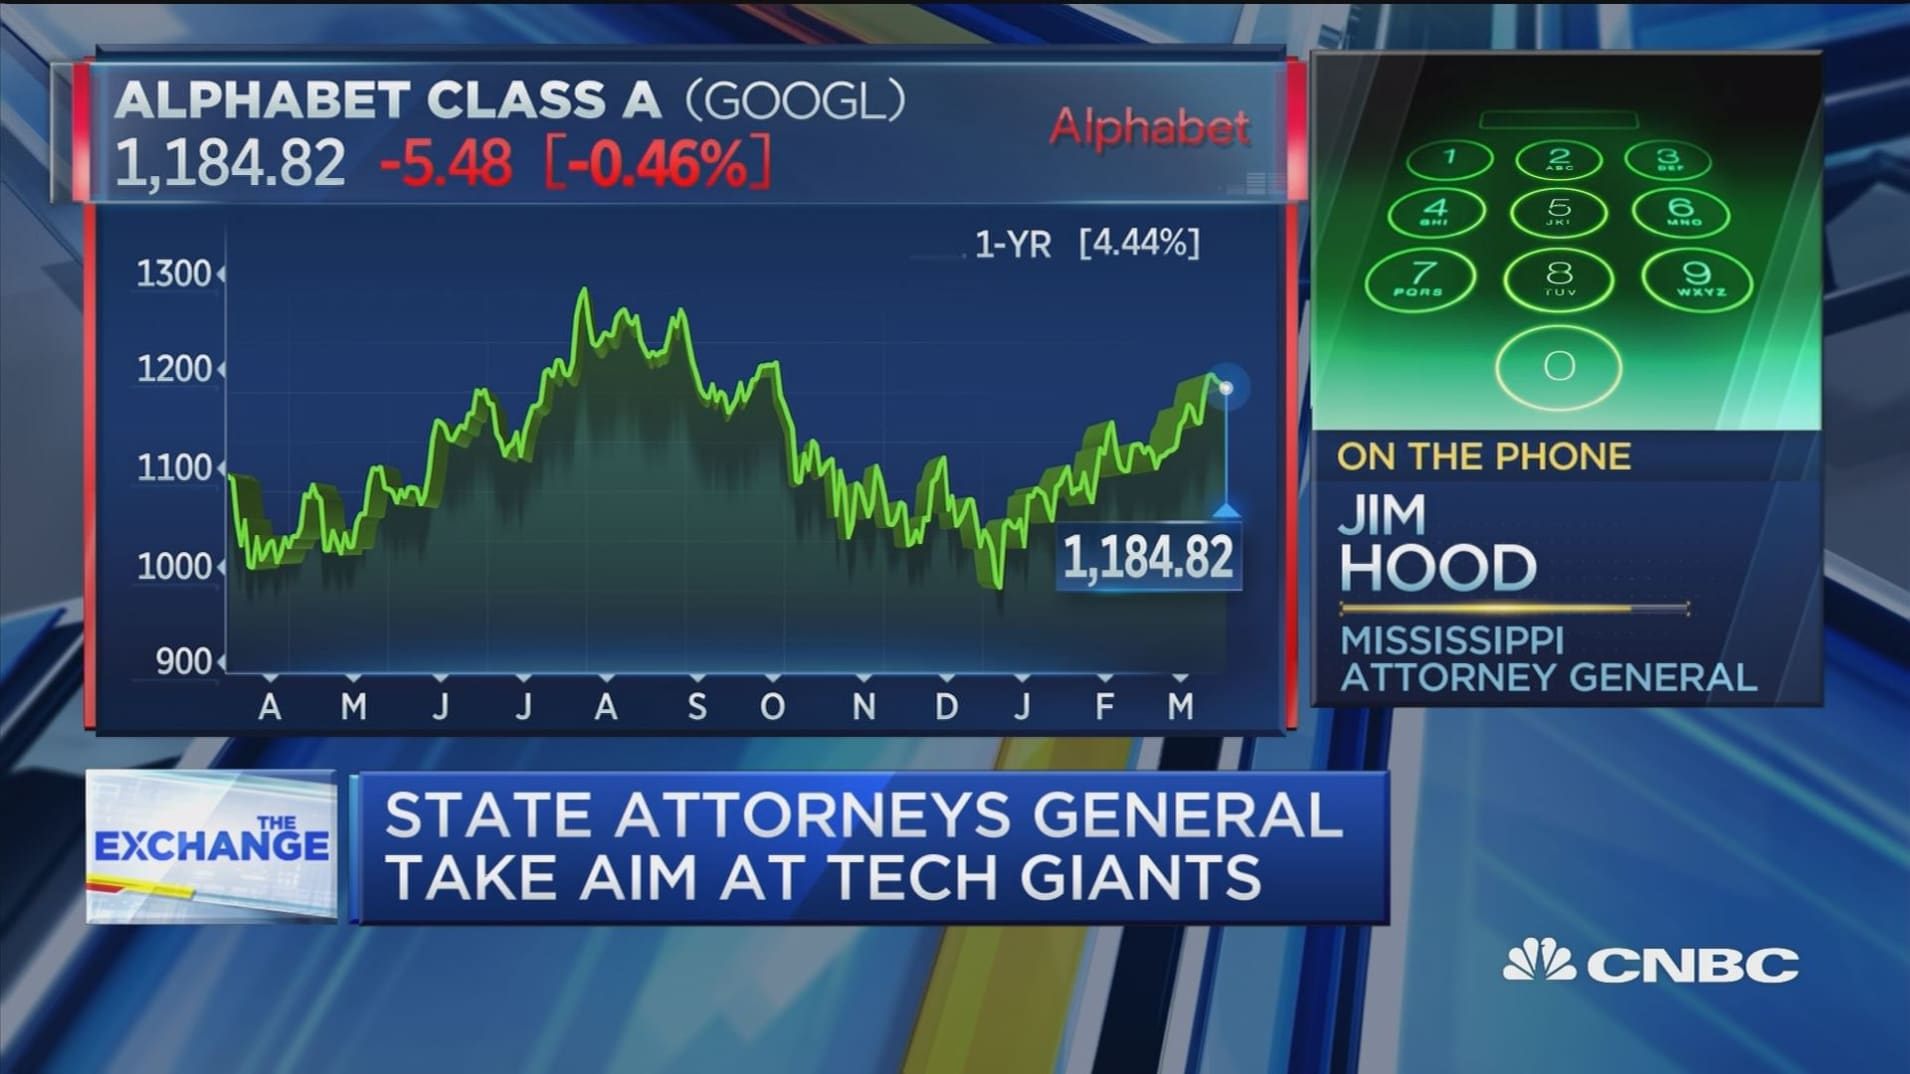 'We're preparing' to build an antitrust case against Google similar to Microsoft, Mississippi AG says